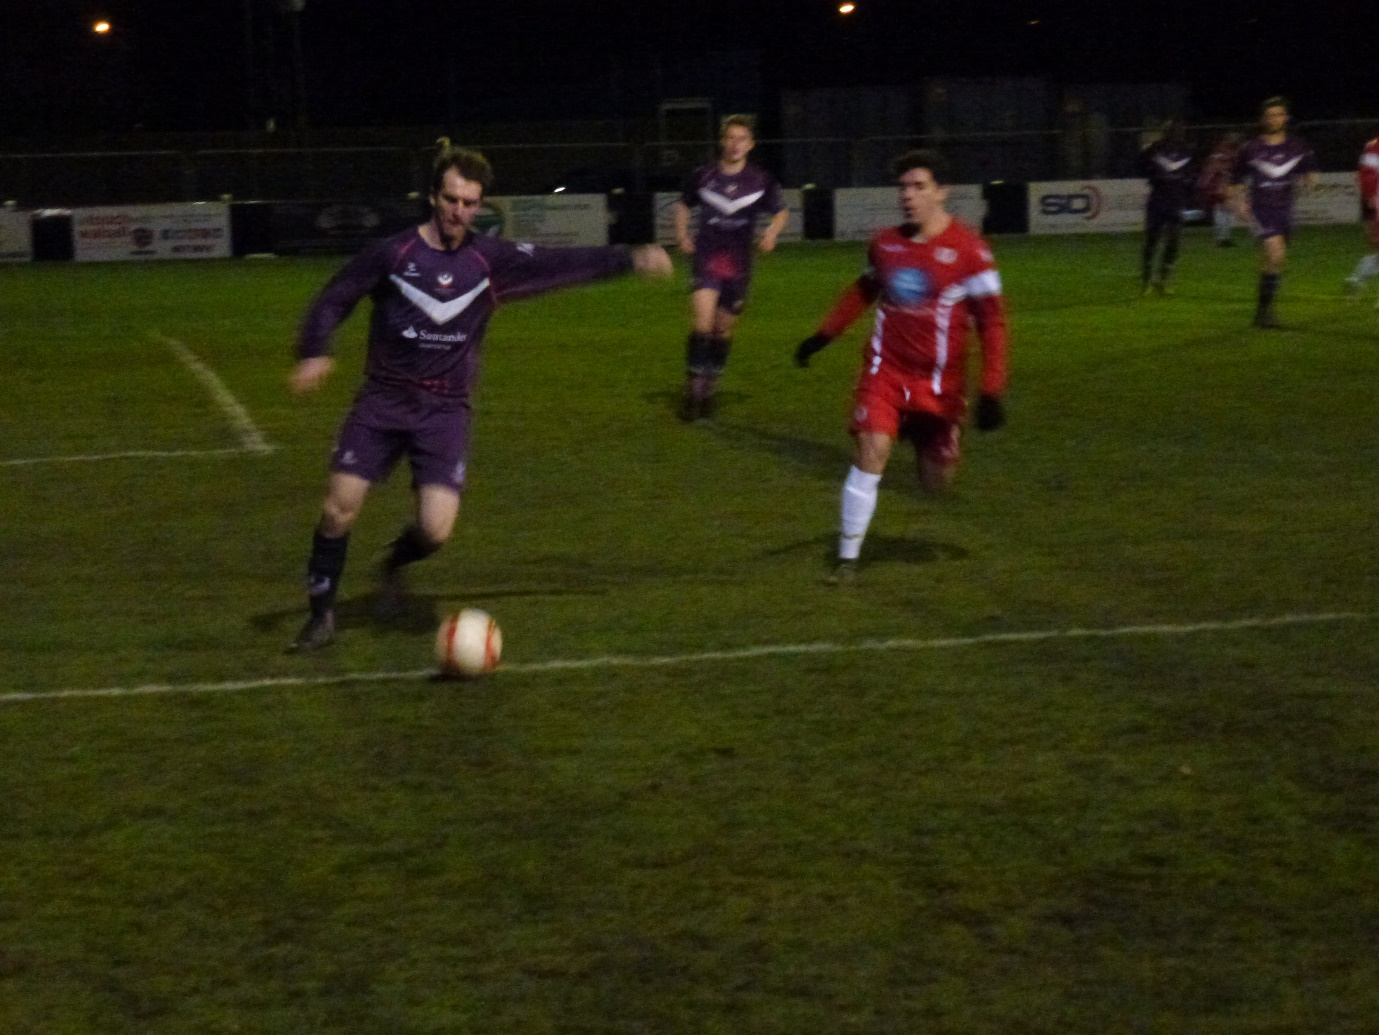 An fine early clearance kick by Loughborough . This was to become a hard, yet fair contest